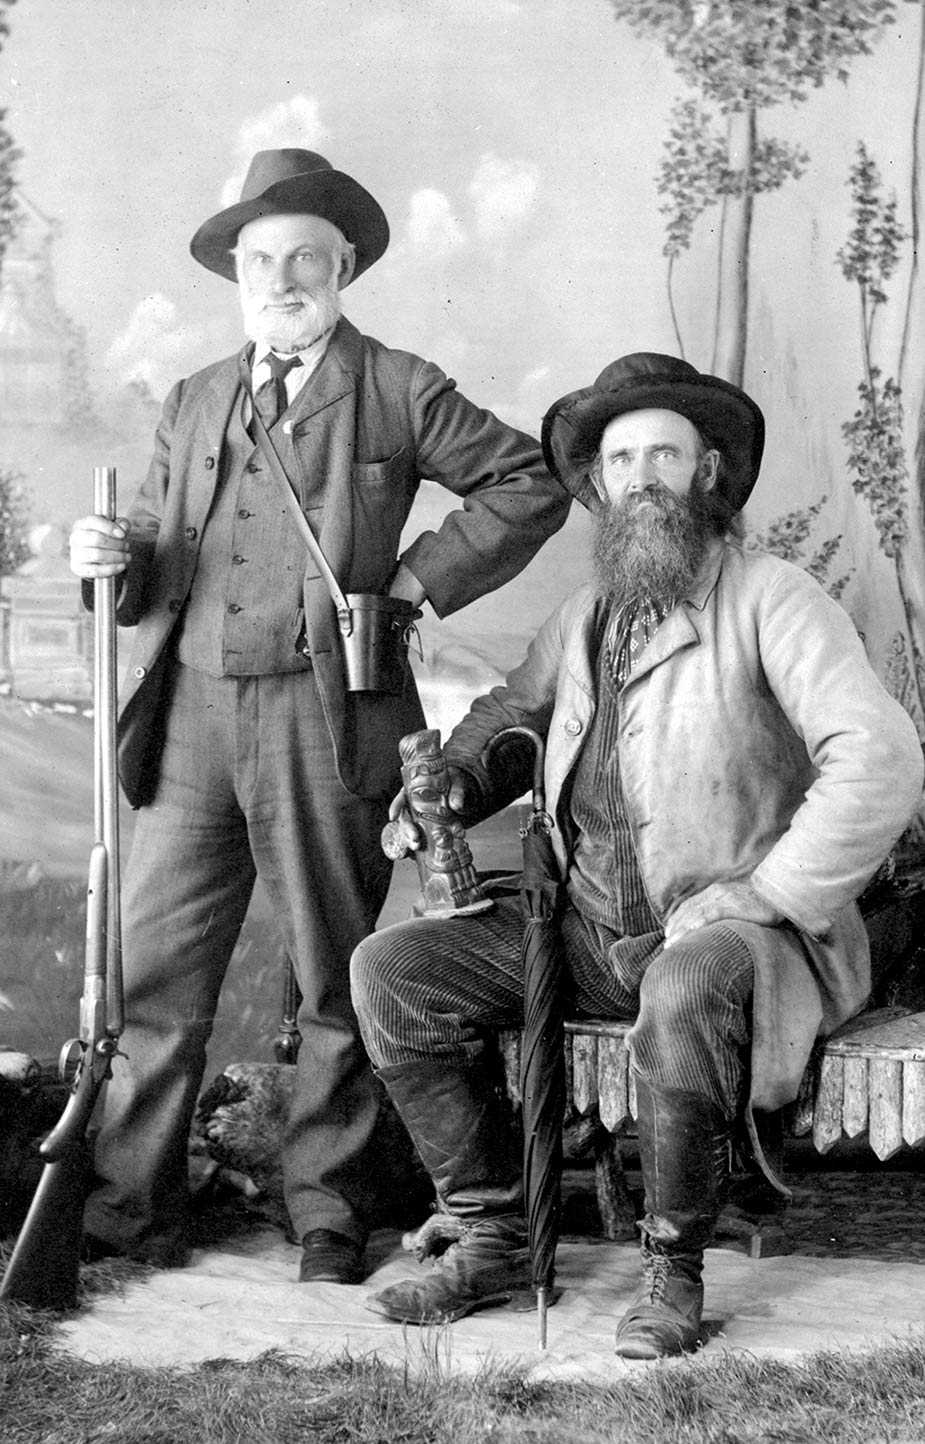 Richard Maynard and Captain Newton H. Chittenden (on right); just returned from their first trip to the Queen Charlotte Islands. Photo by Hannah Maynard, c. 1875. BCA c-08862.